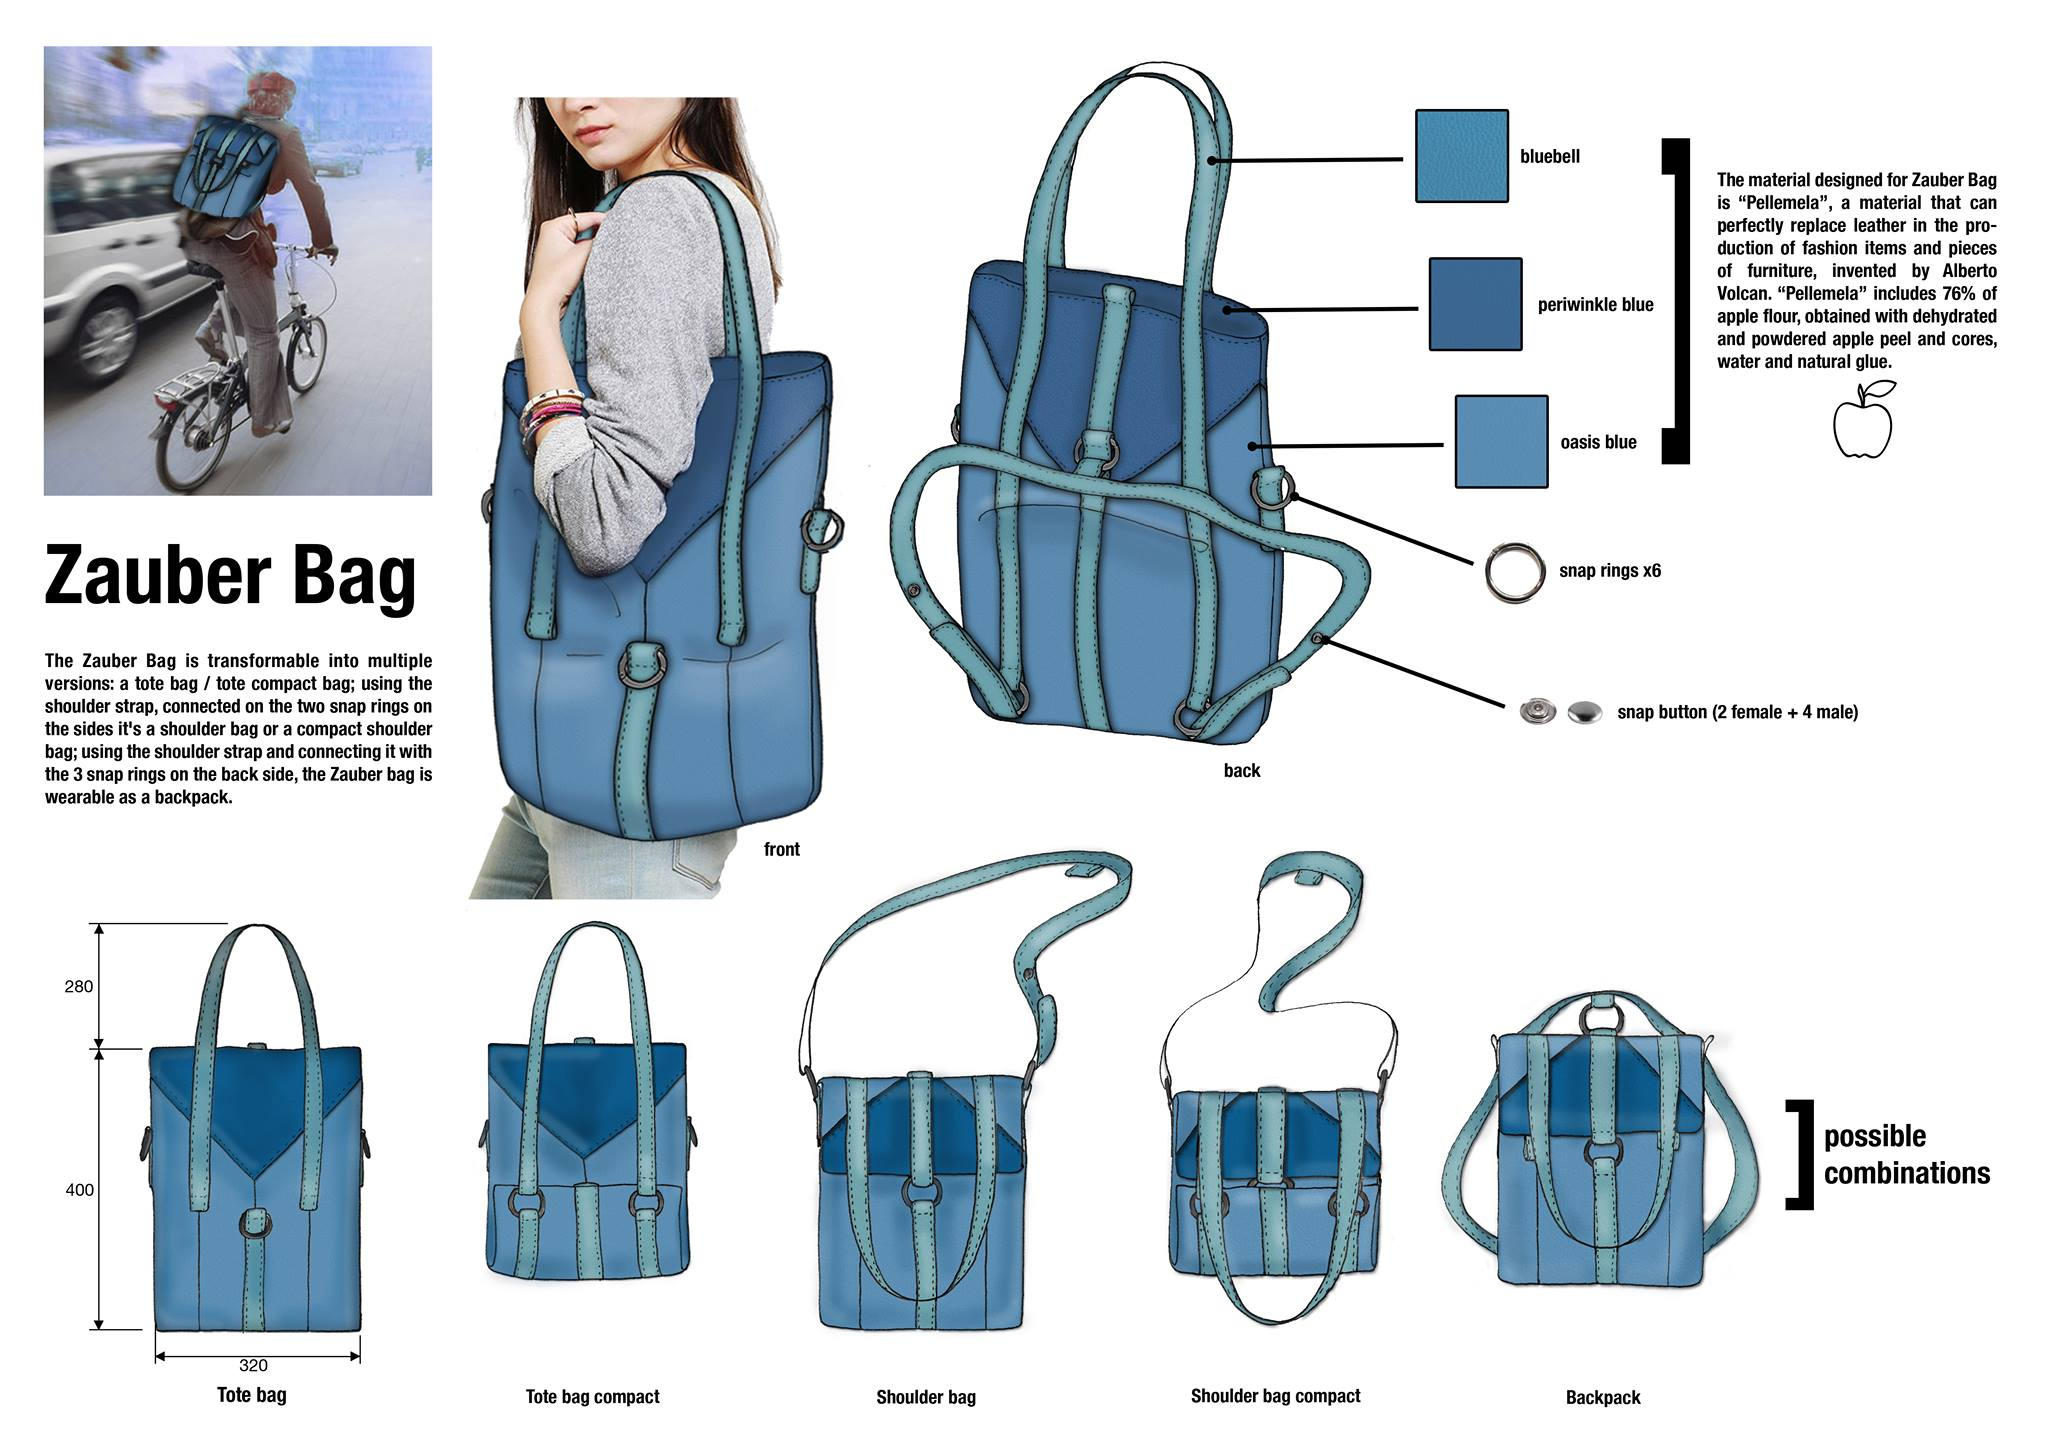 Design-A-Bag Competition 2016